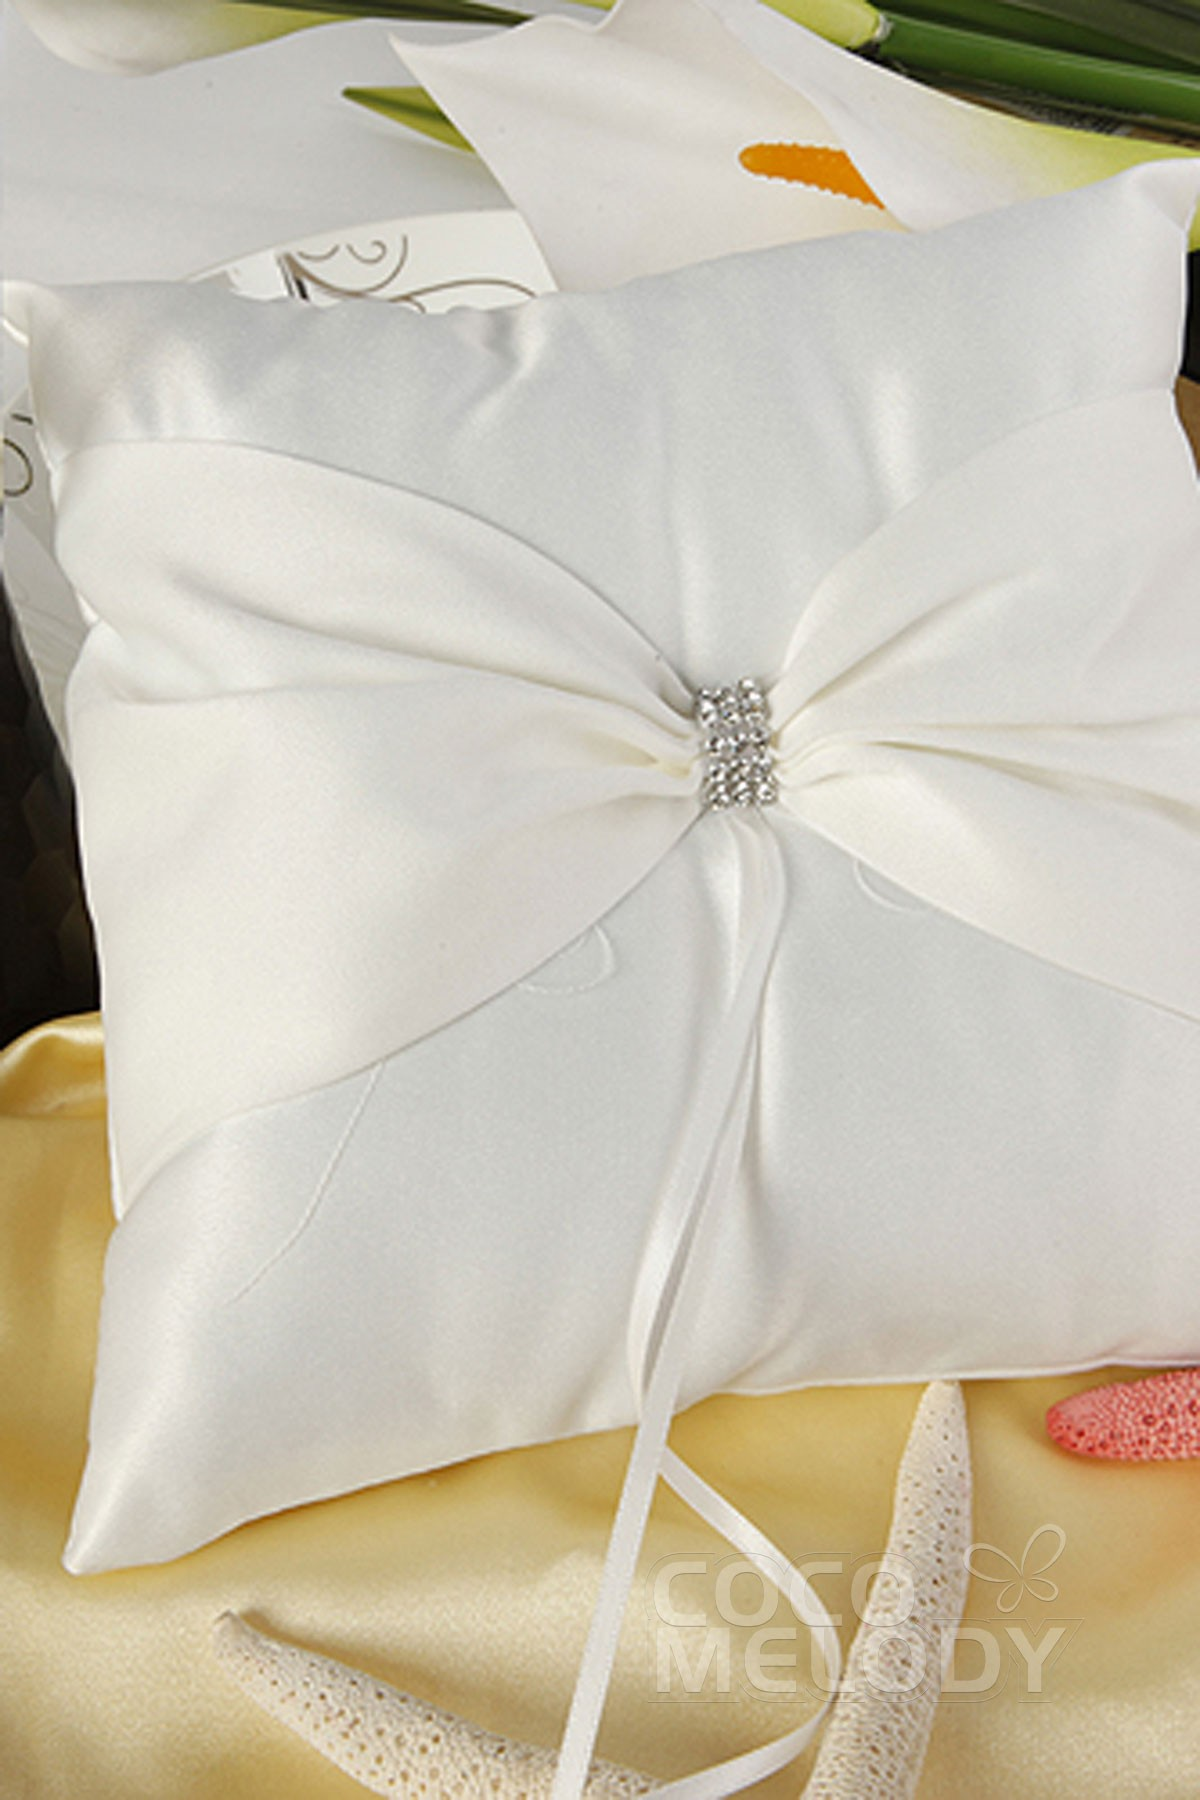 Cocomelody: Satin Wedding Ring Pillow SJZ15014